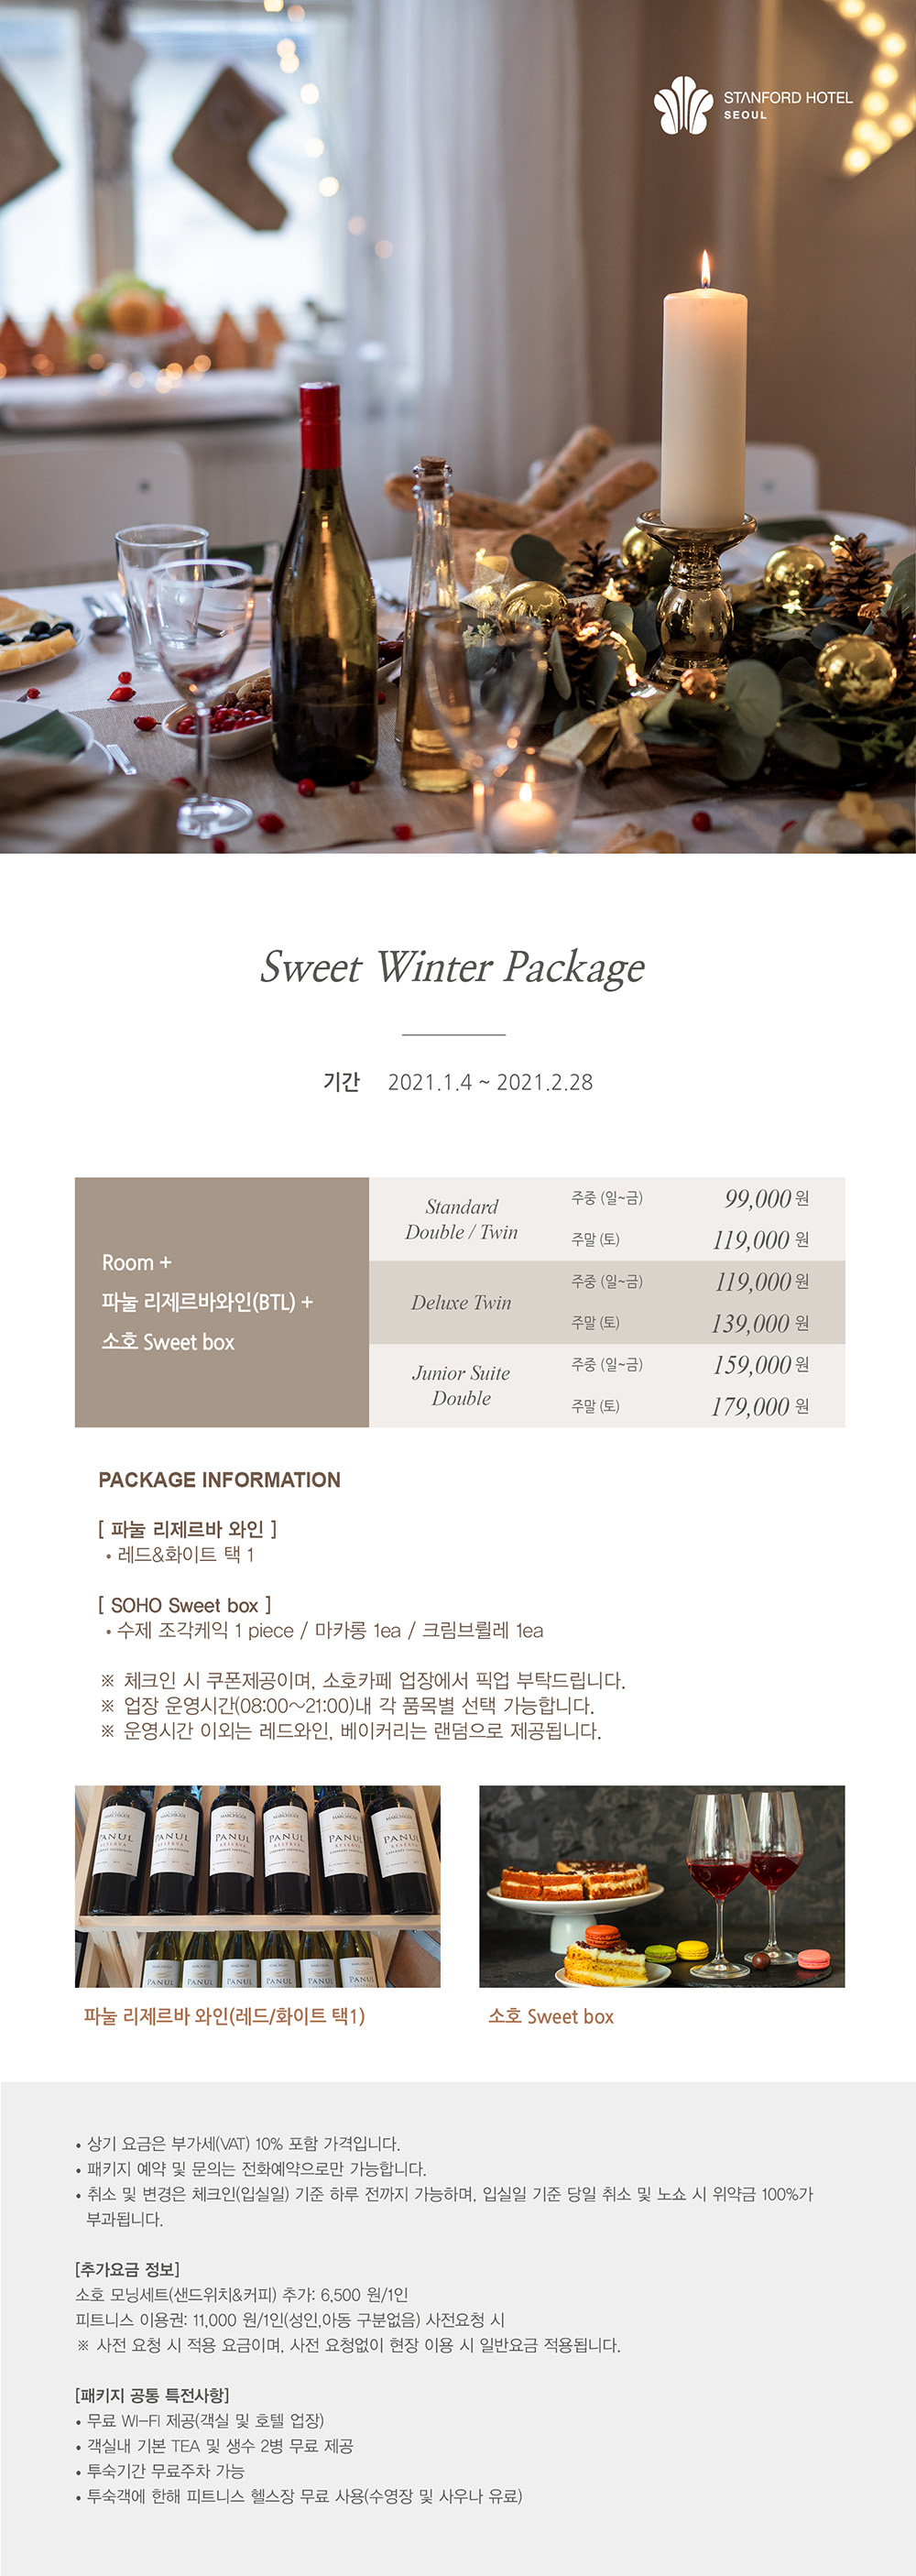 sweet winter pkg-4.jpg